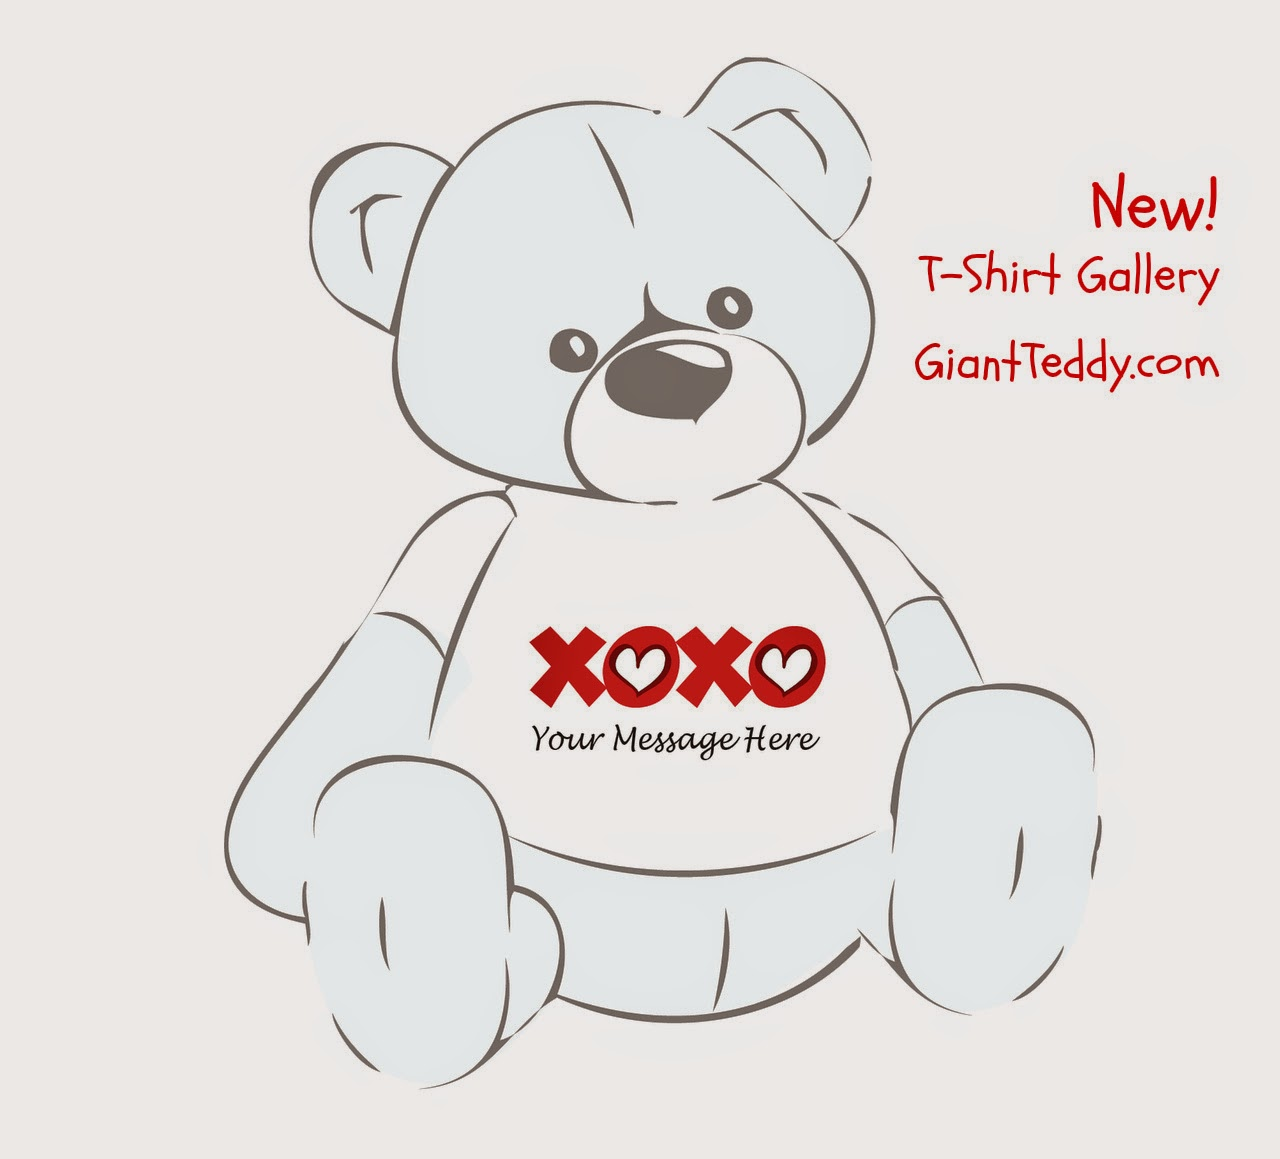 Personalize any size Giant Teddy bear